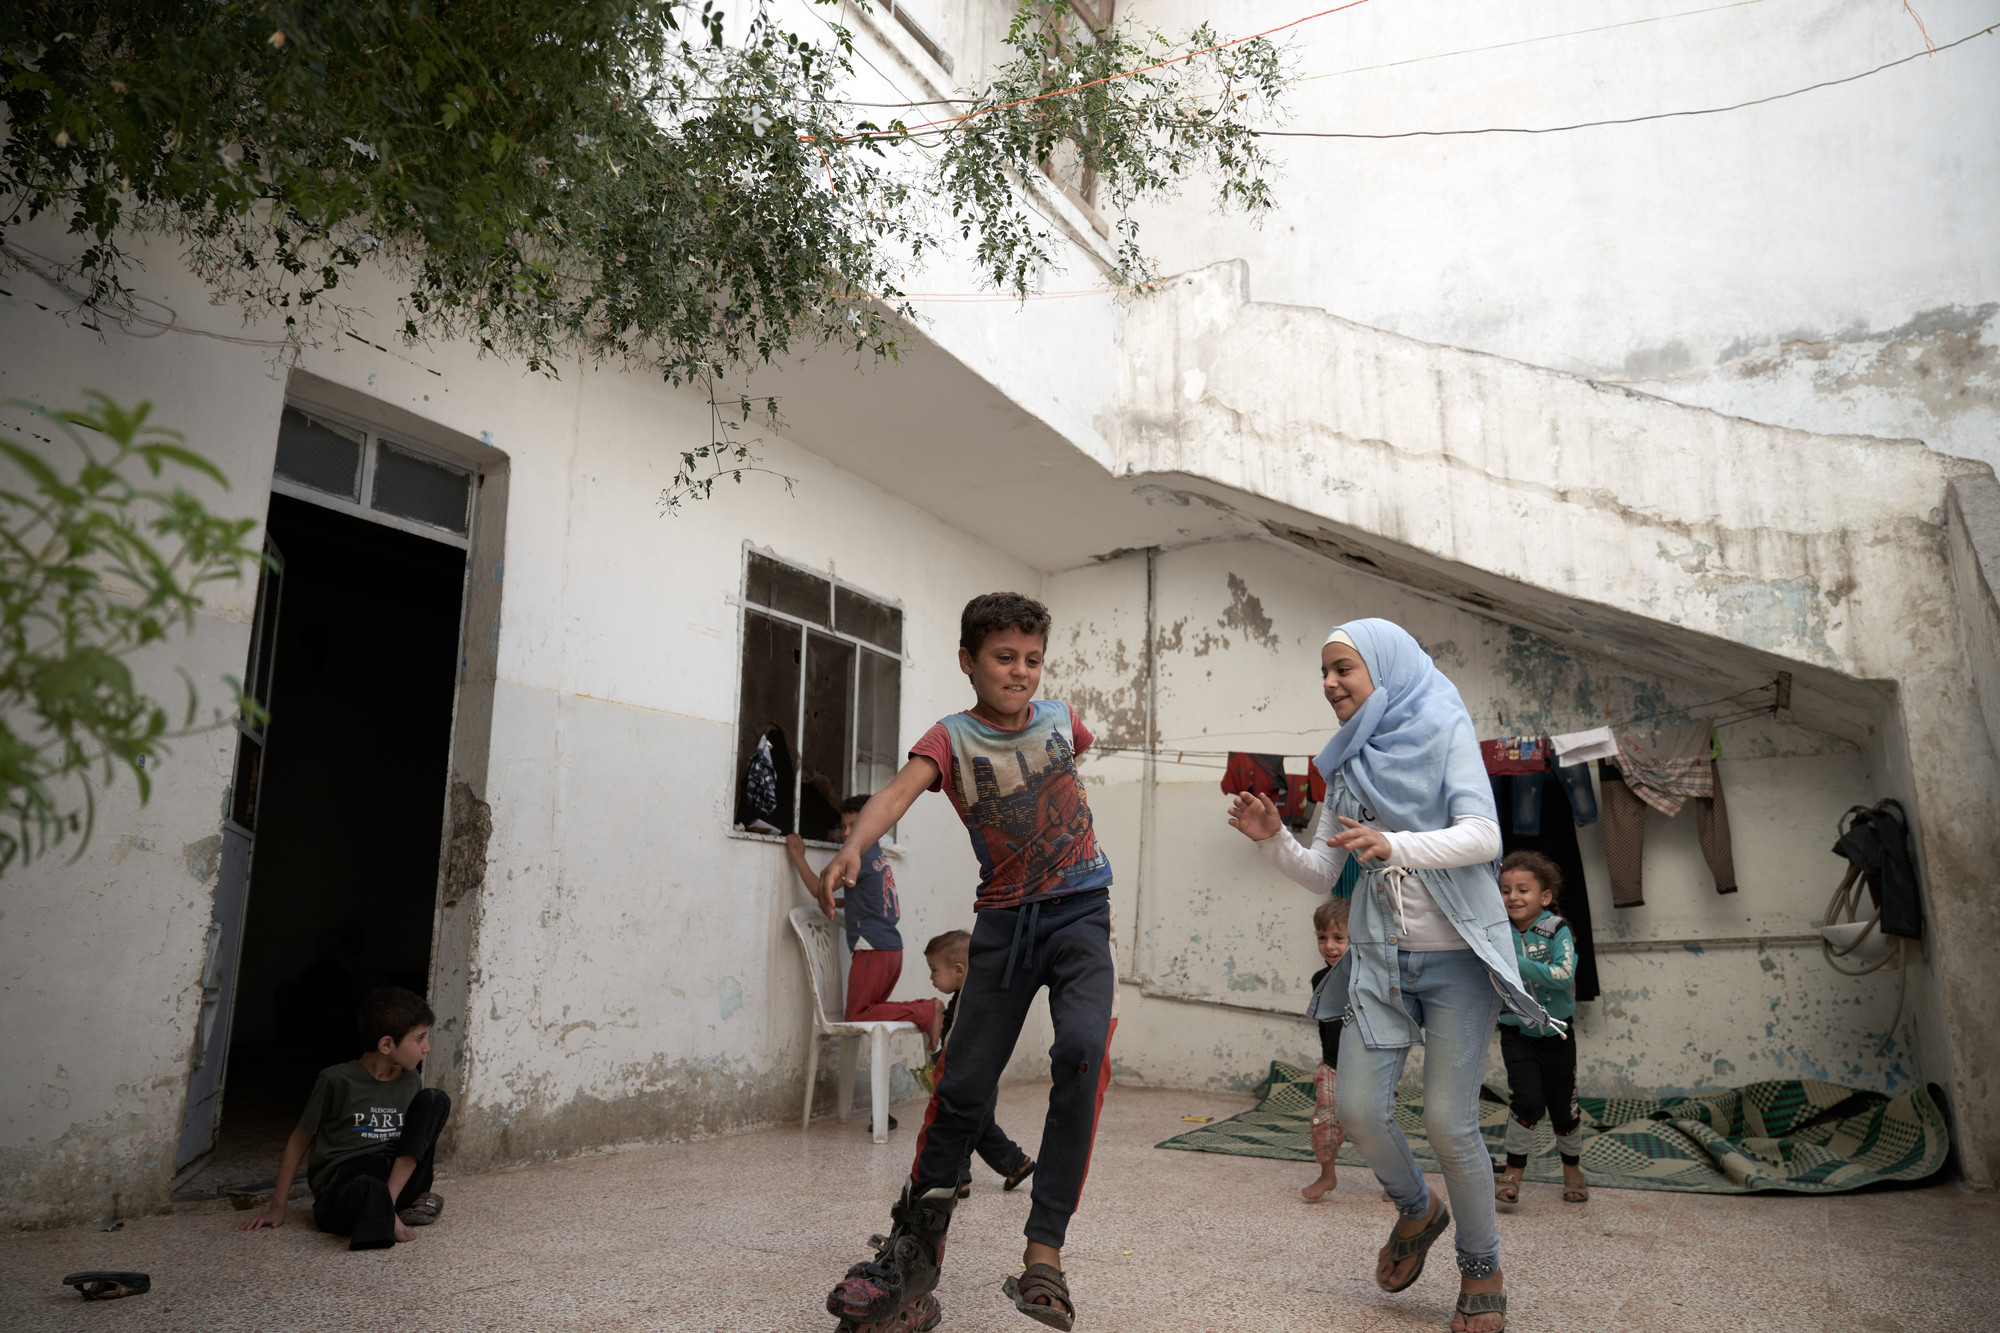 Children play in front of a house.